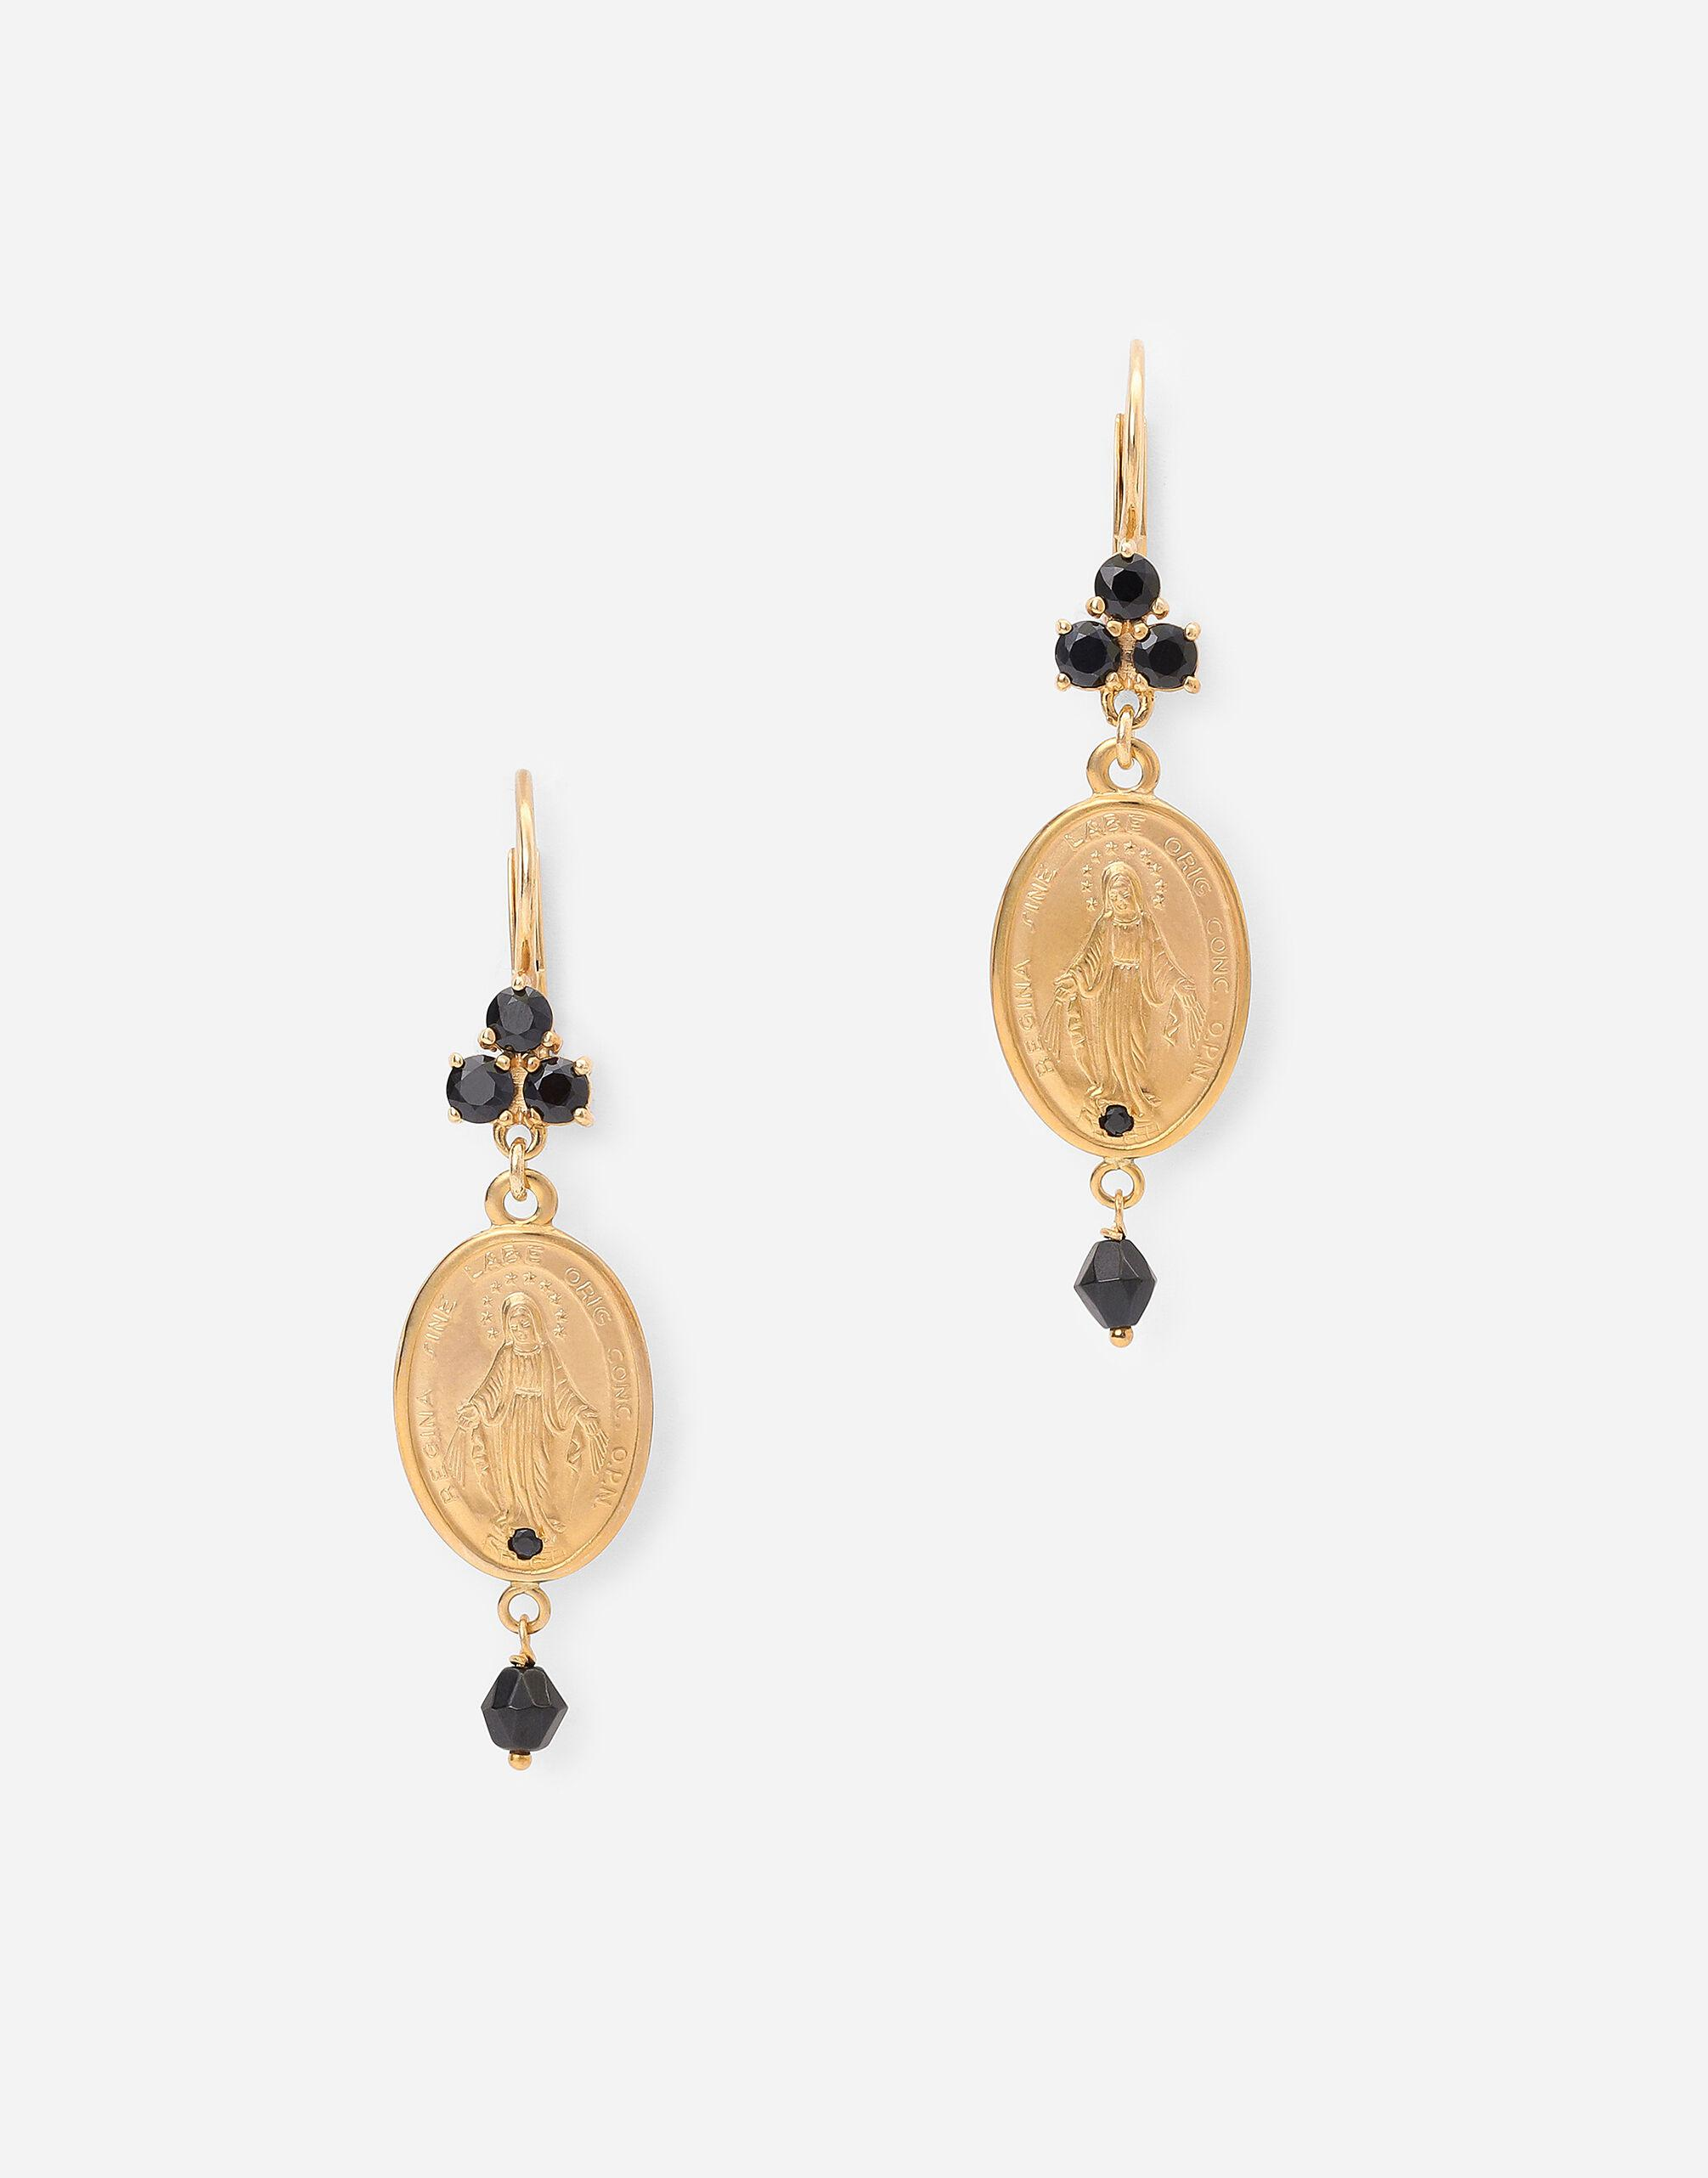 Tradition earrings in yellow 18kt gold with medals